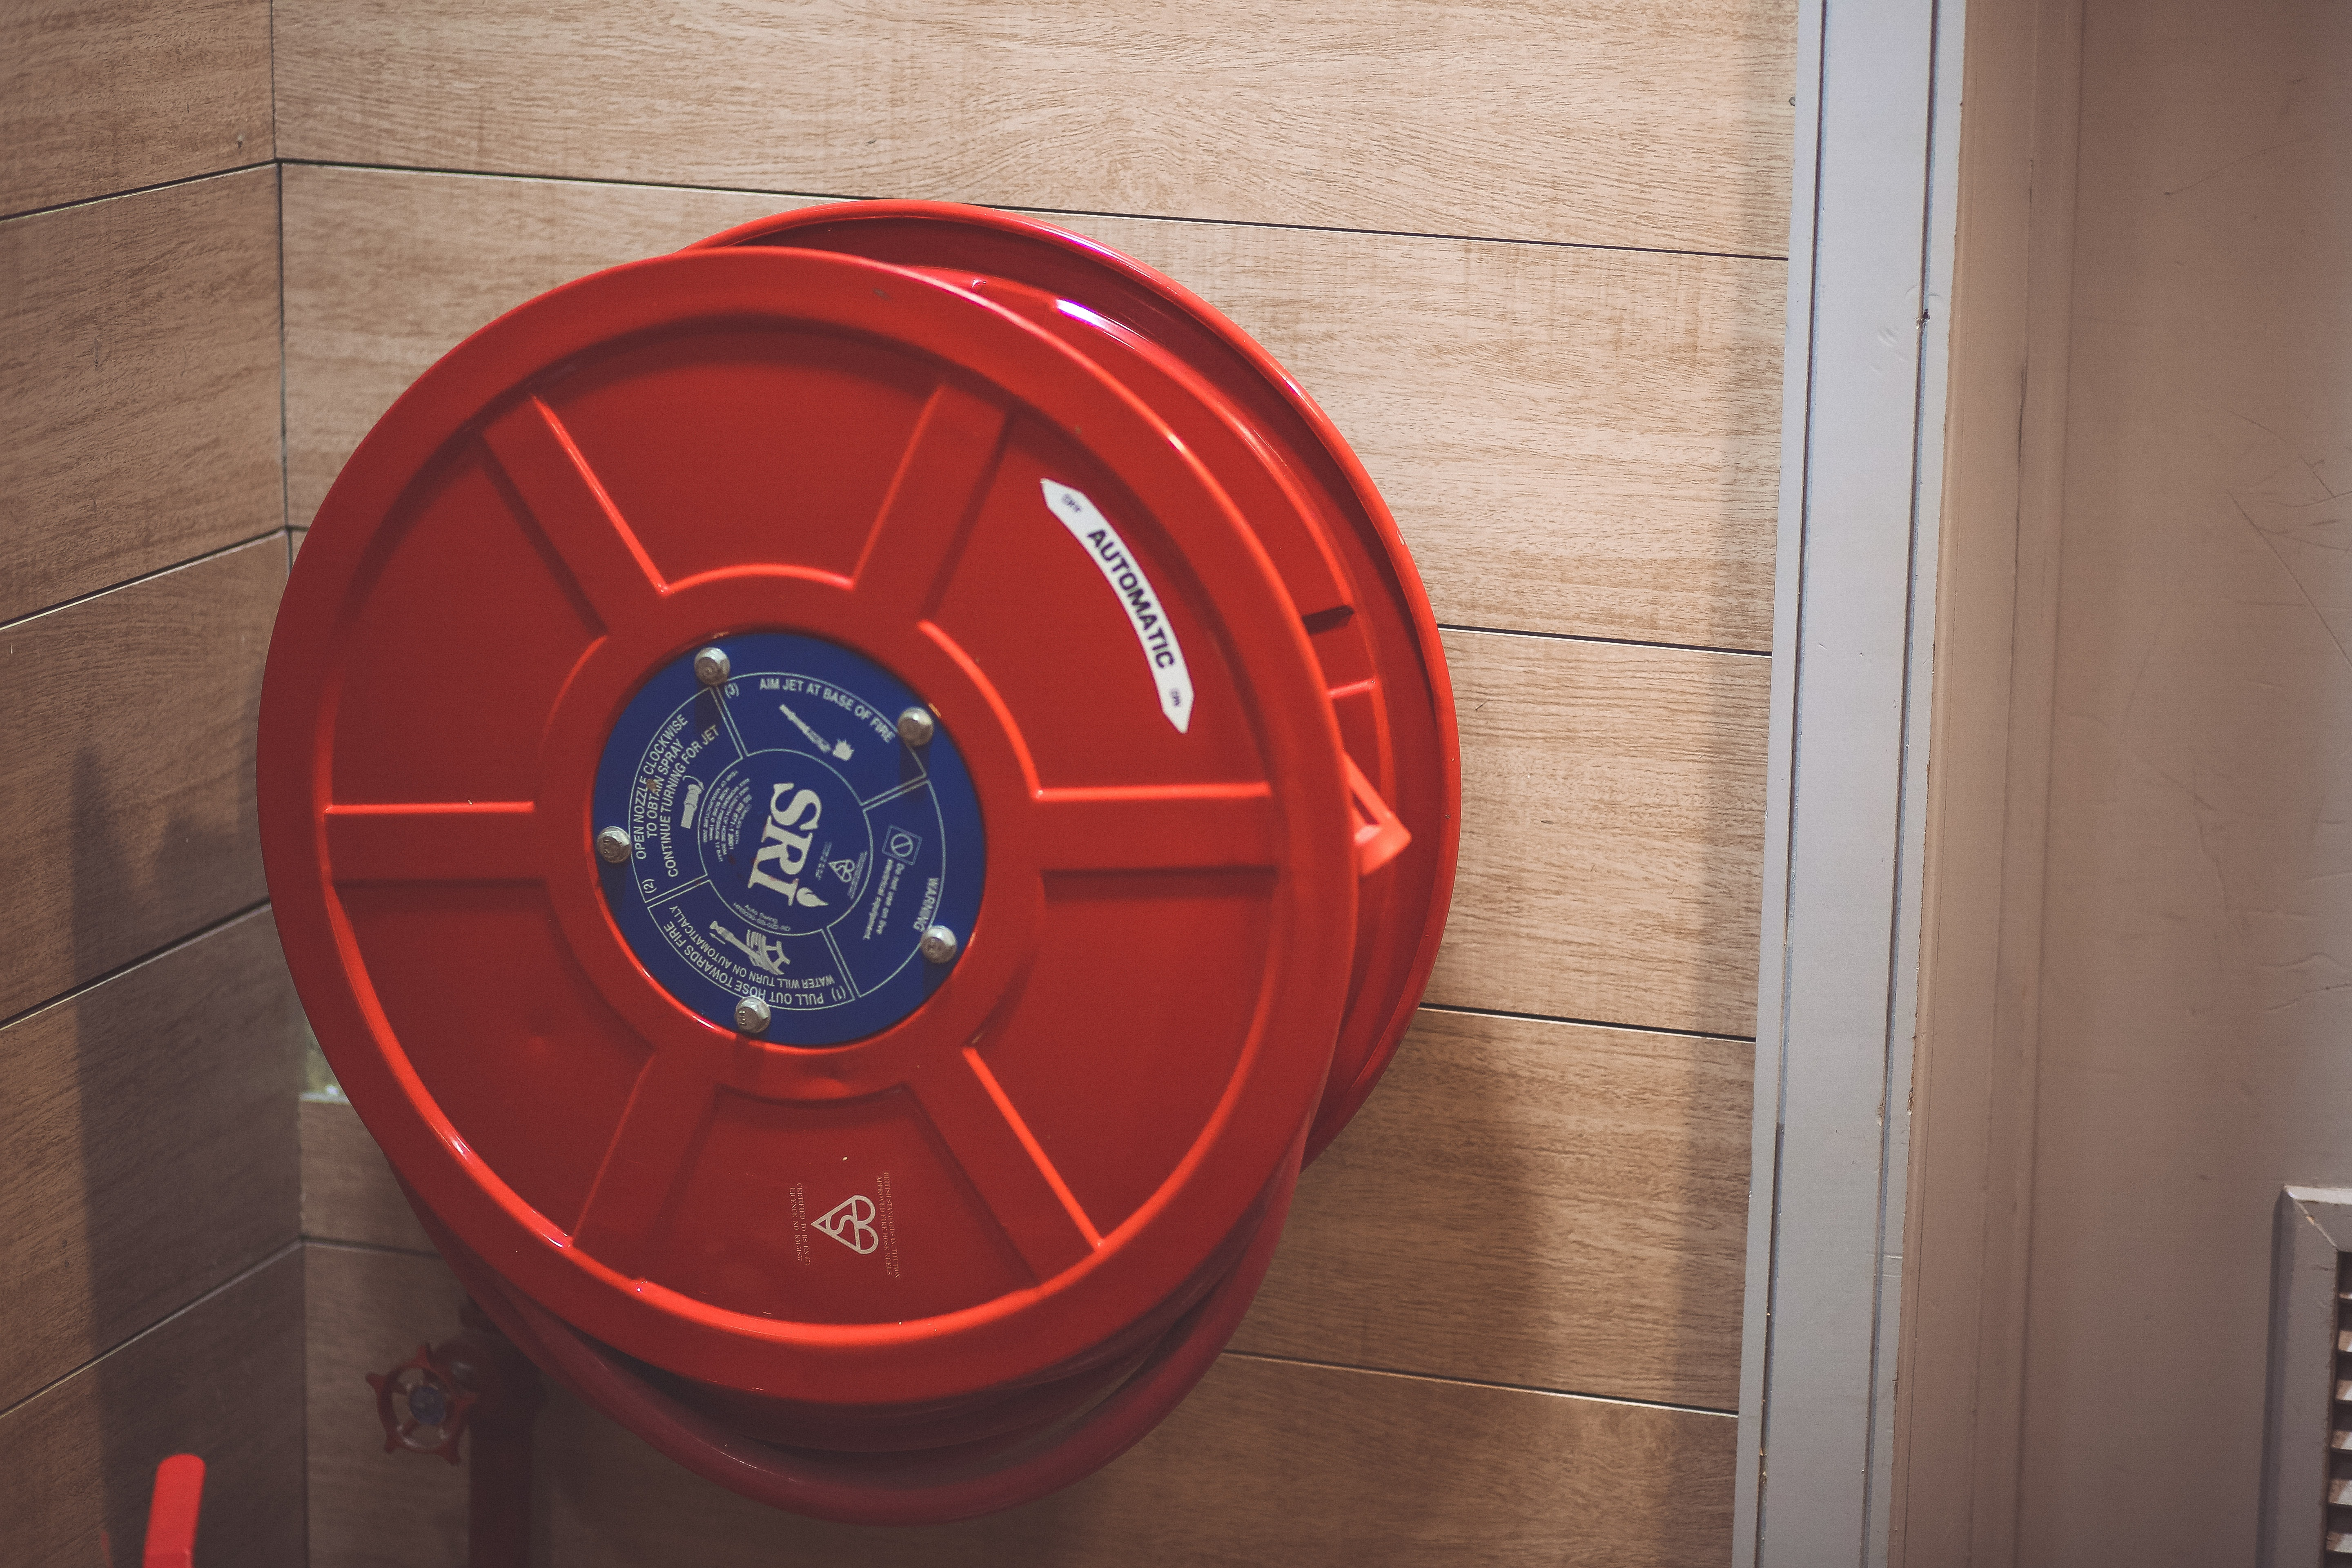 Red Hose Storage Handle & Red Fire Extinguisher Beside Hose Reel Inside the Room · Free Stock ...